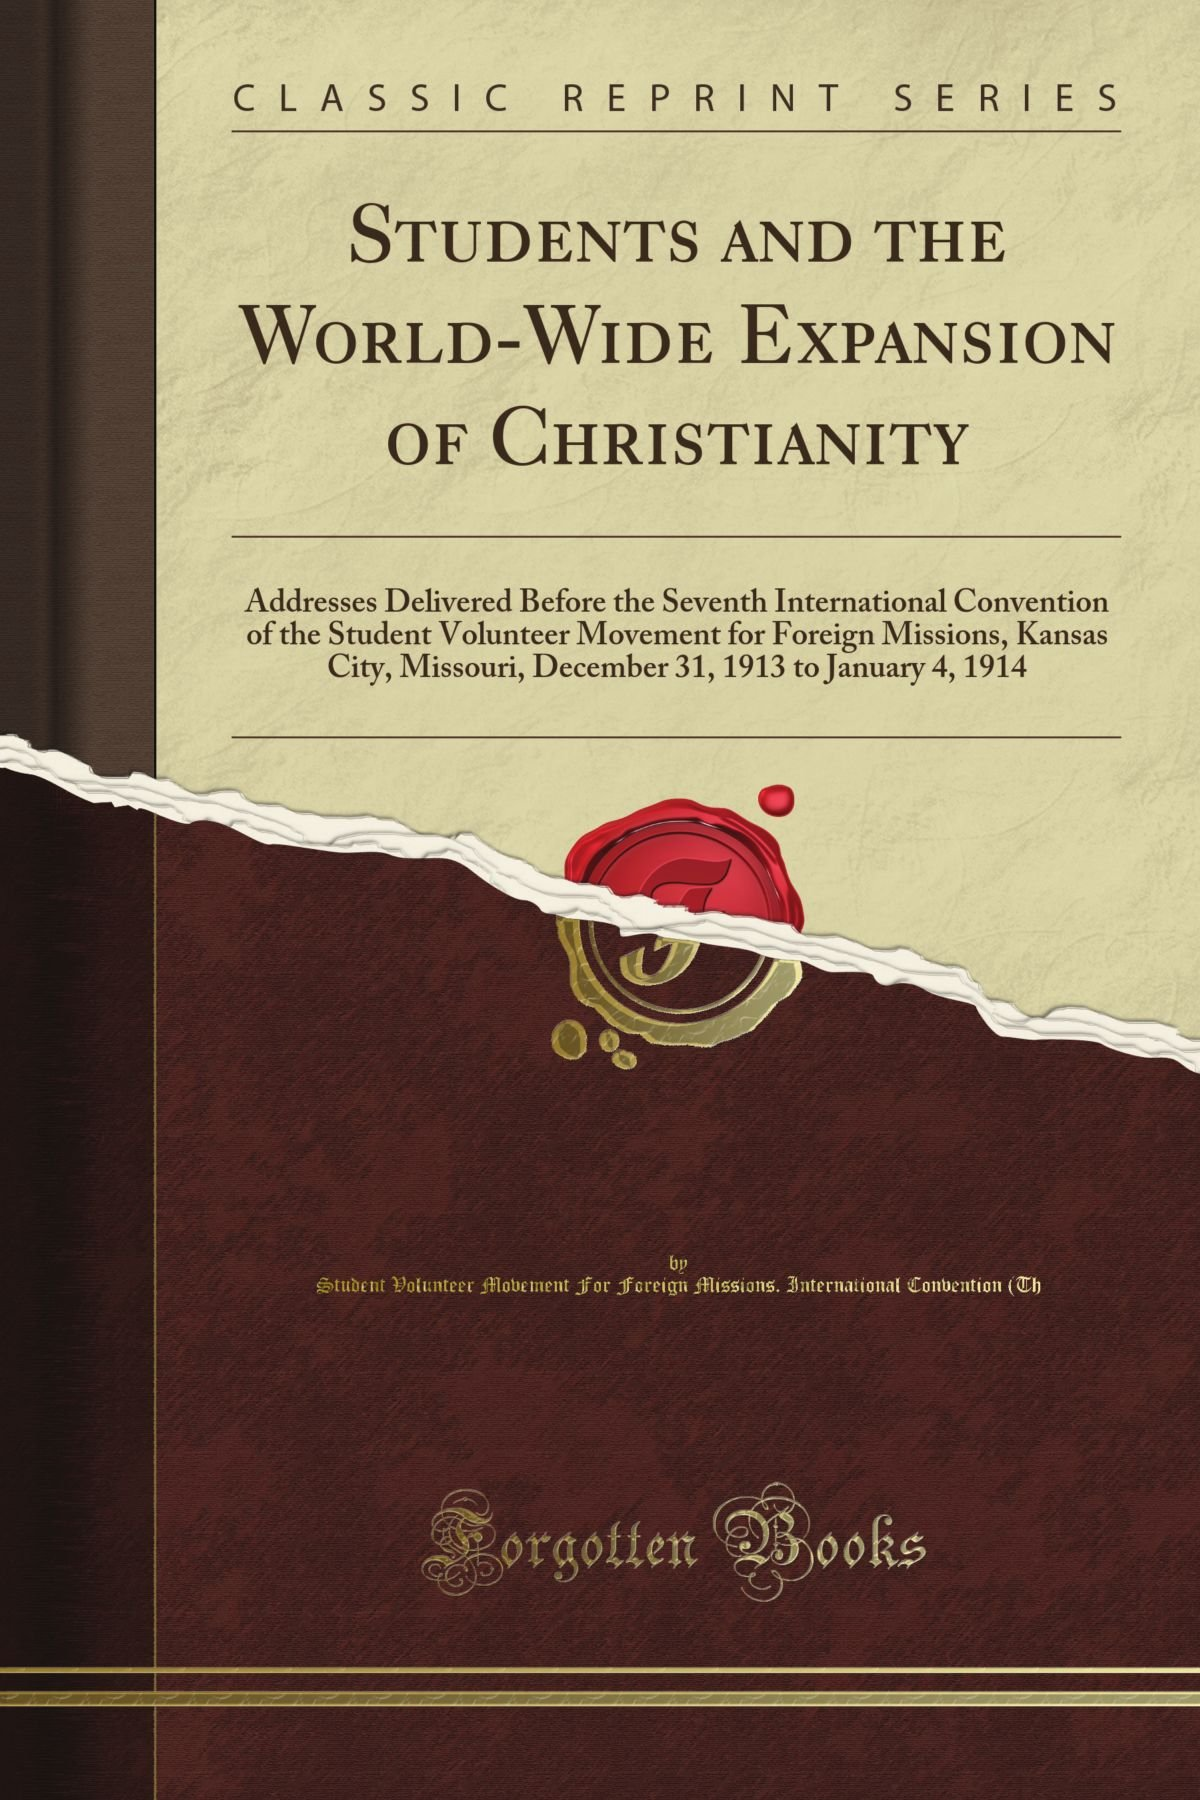 Read Online Students and the World-Wide Expansion of Christianity: Addresses Delivered Before the Seventh International Convention of the Student Volunteer ... 31, 1913 to January 4, 1914 (Classic Reprint) ebook